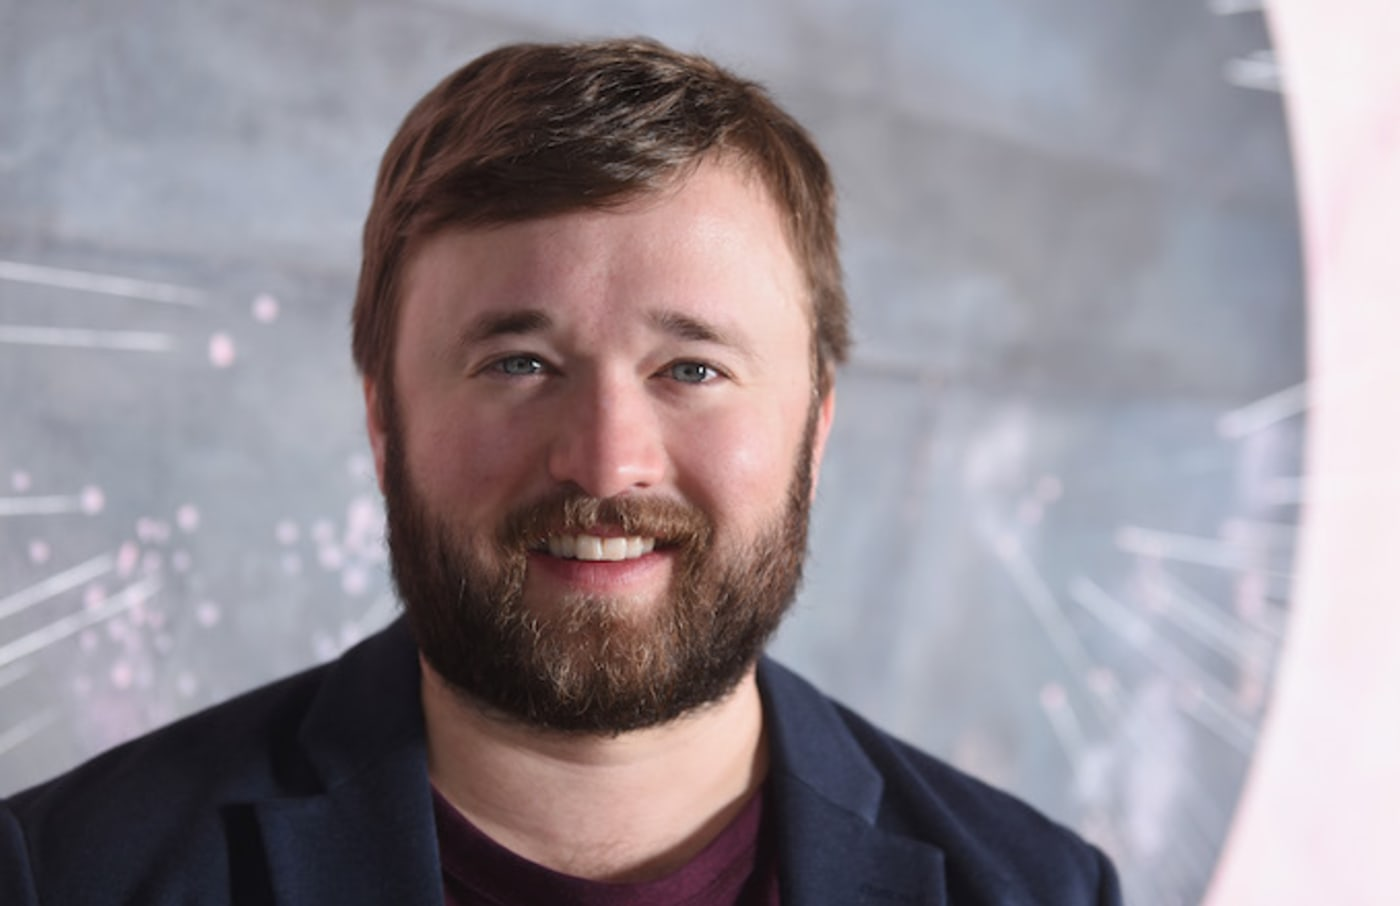 Actor Haley Joel Osment